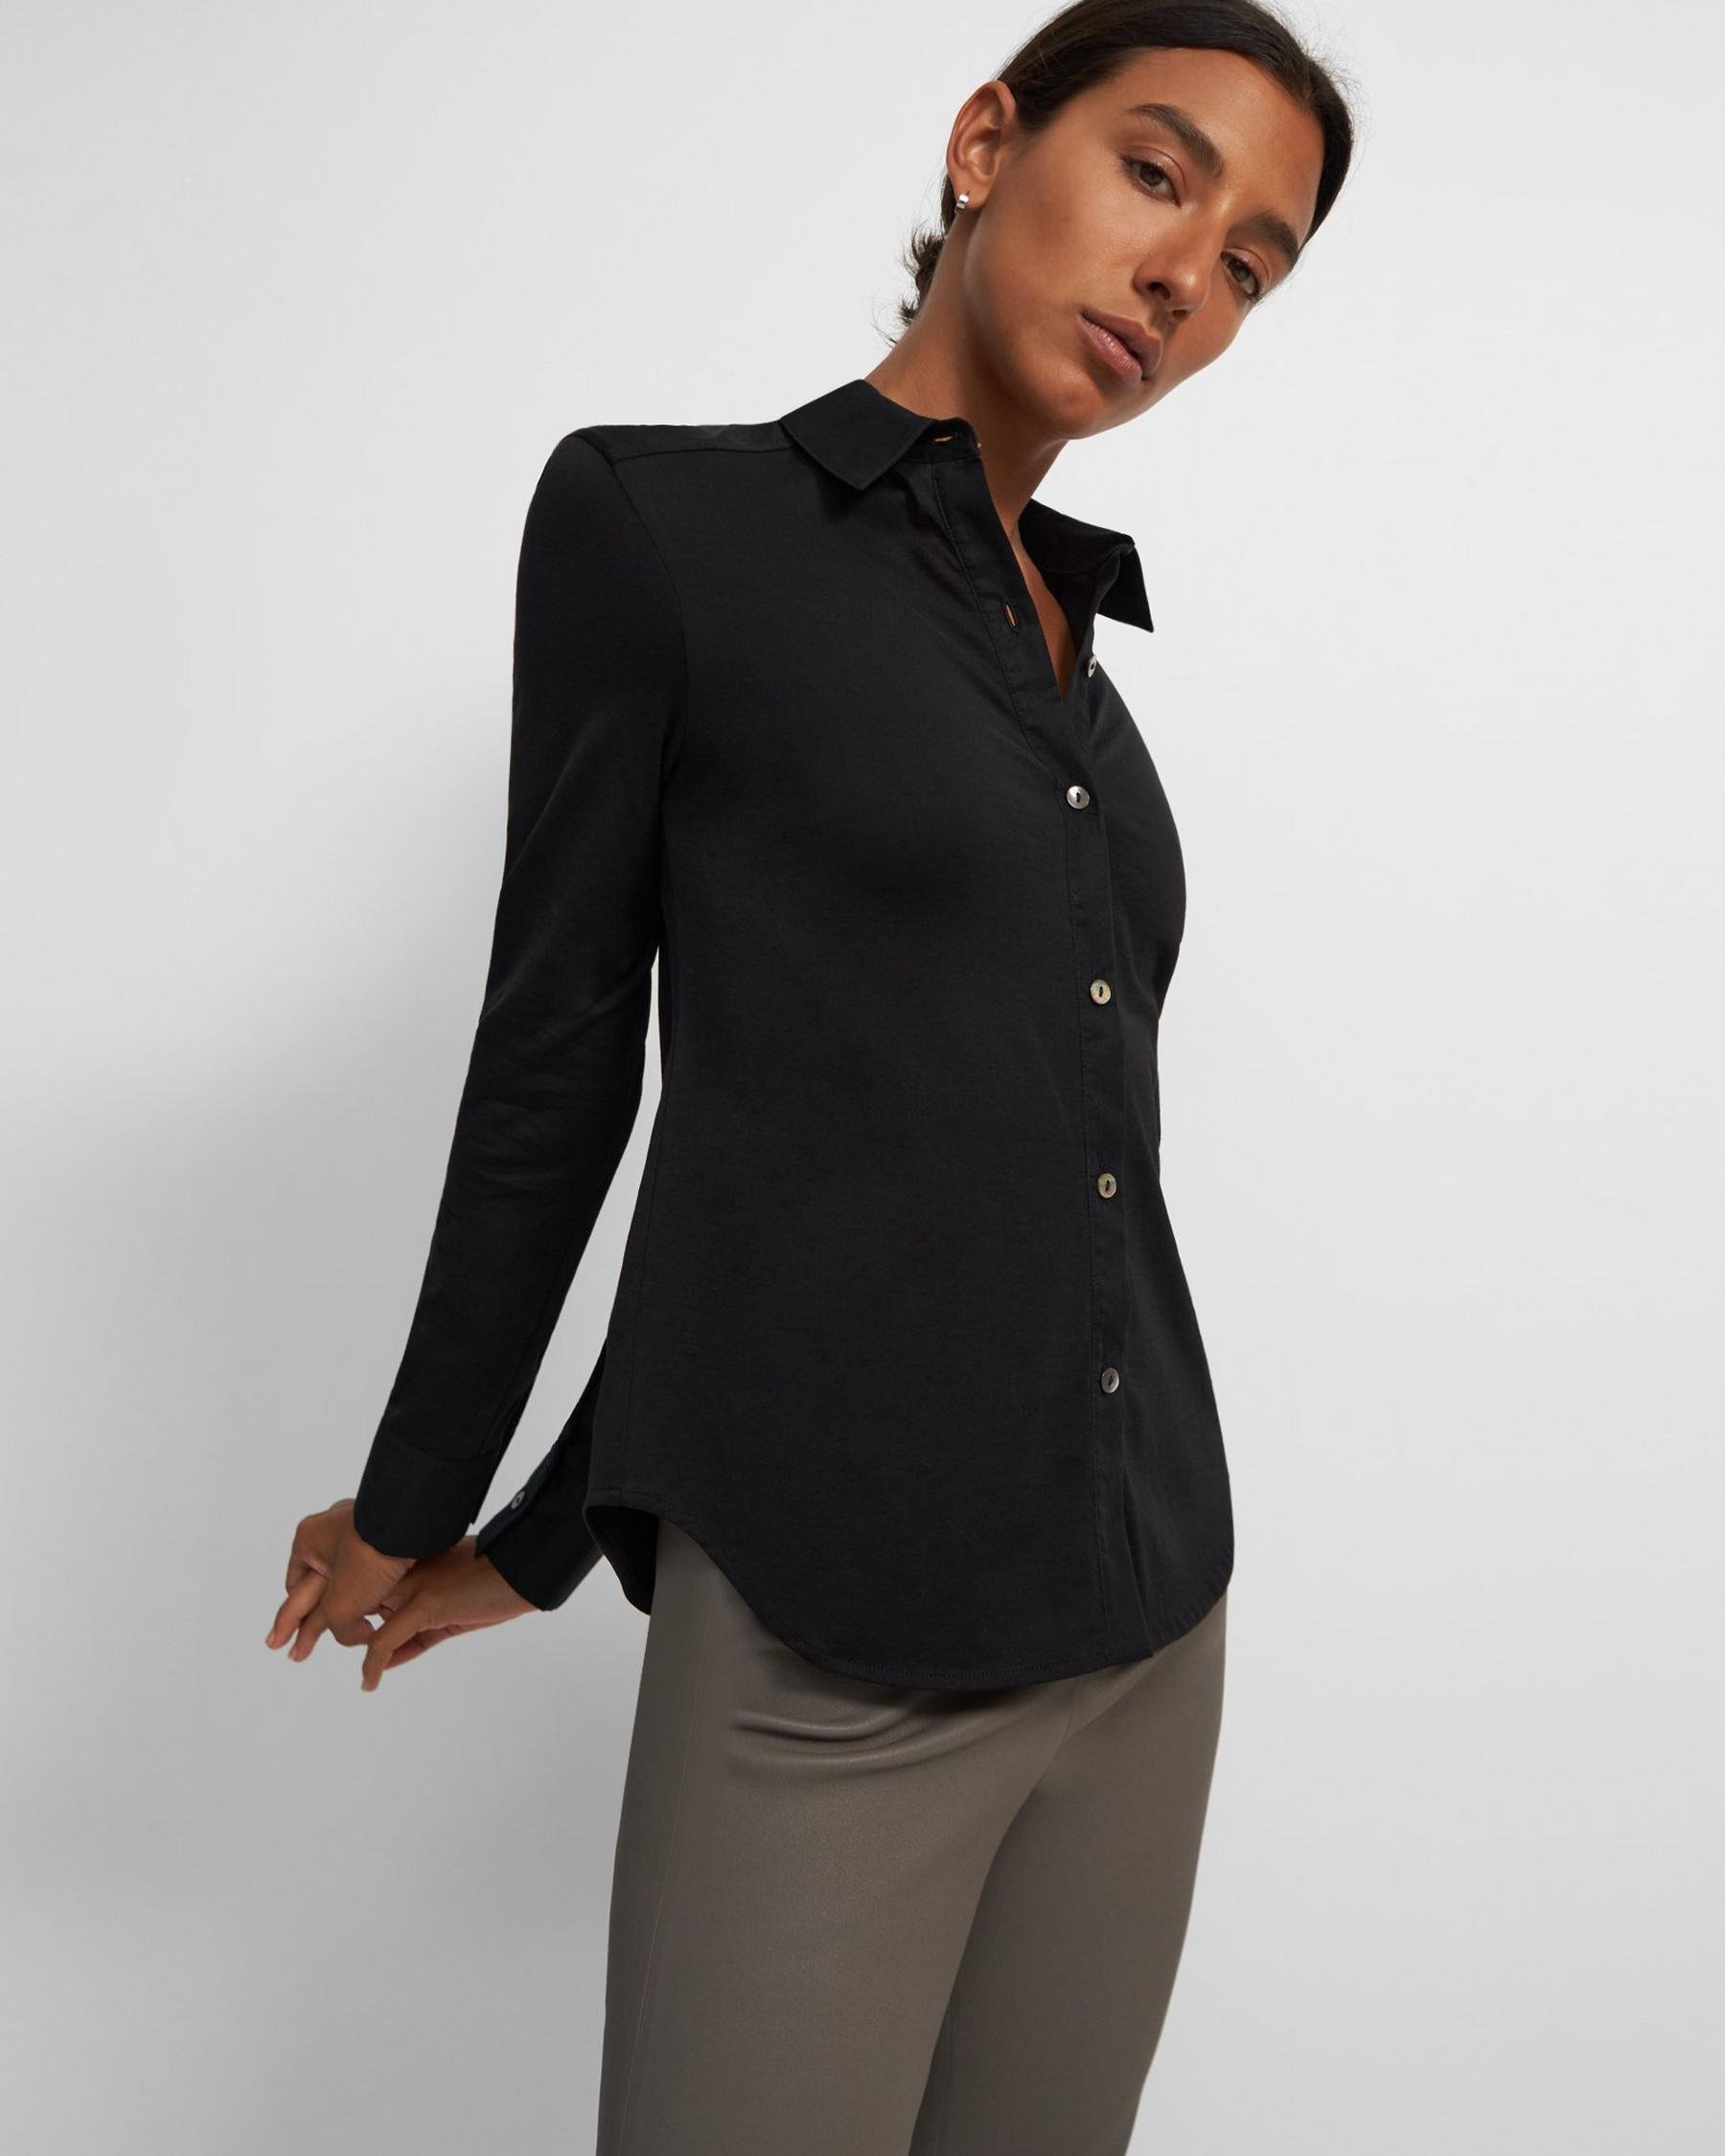 Button-Up Shirt in Organic Cotton Knit